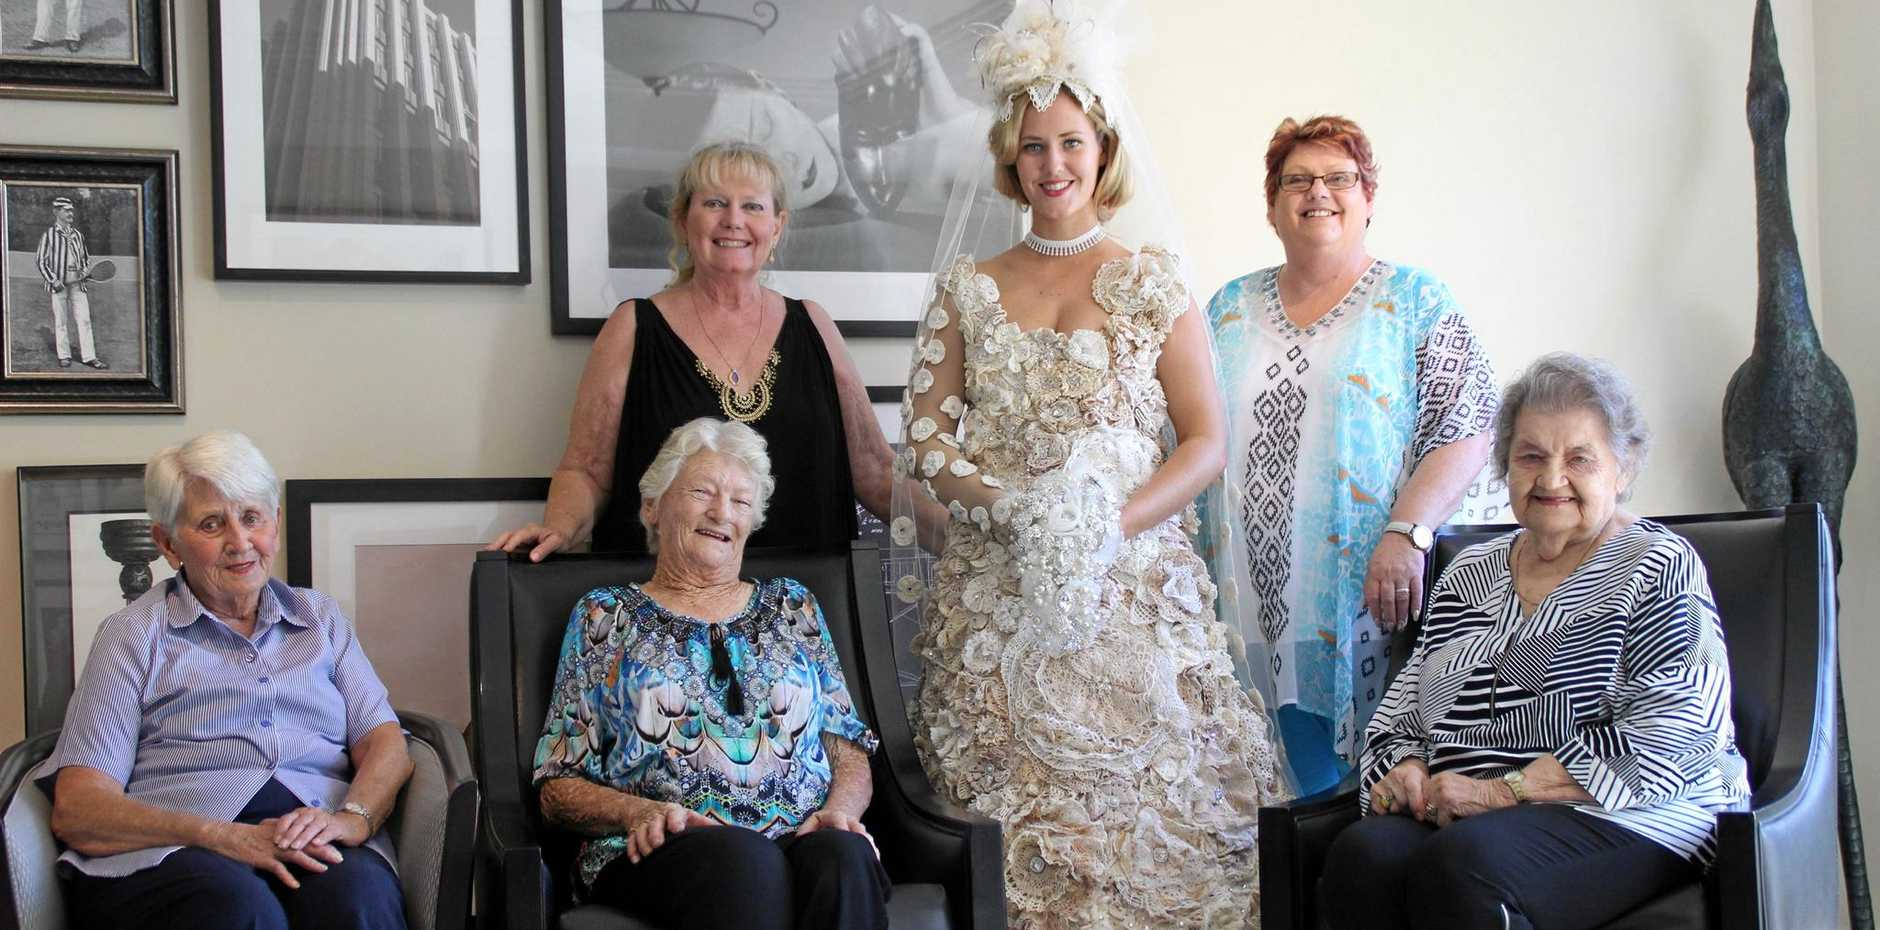 CREATIVE FINGERS: Airlie Meiklejohn, Patricia Winnell, volunteer Lesley Forbes and her daughter Amber, Allison Ferguson and Rita Petersons.